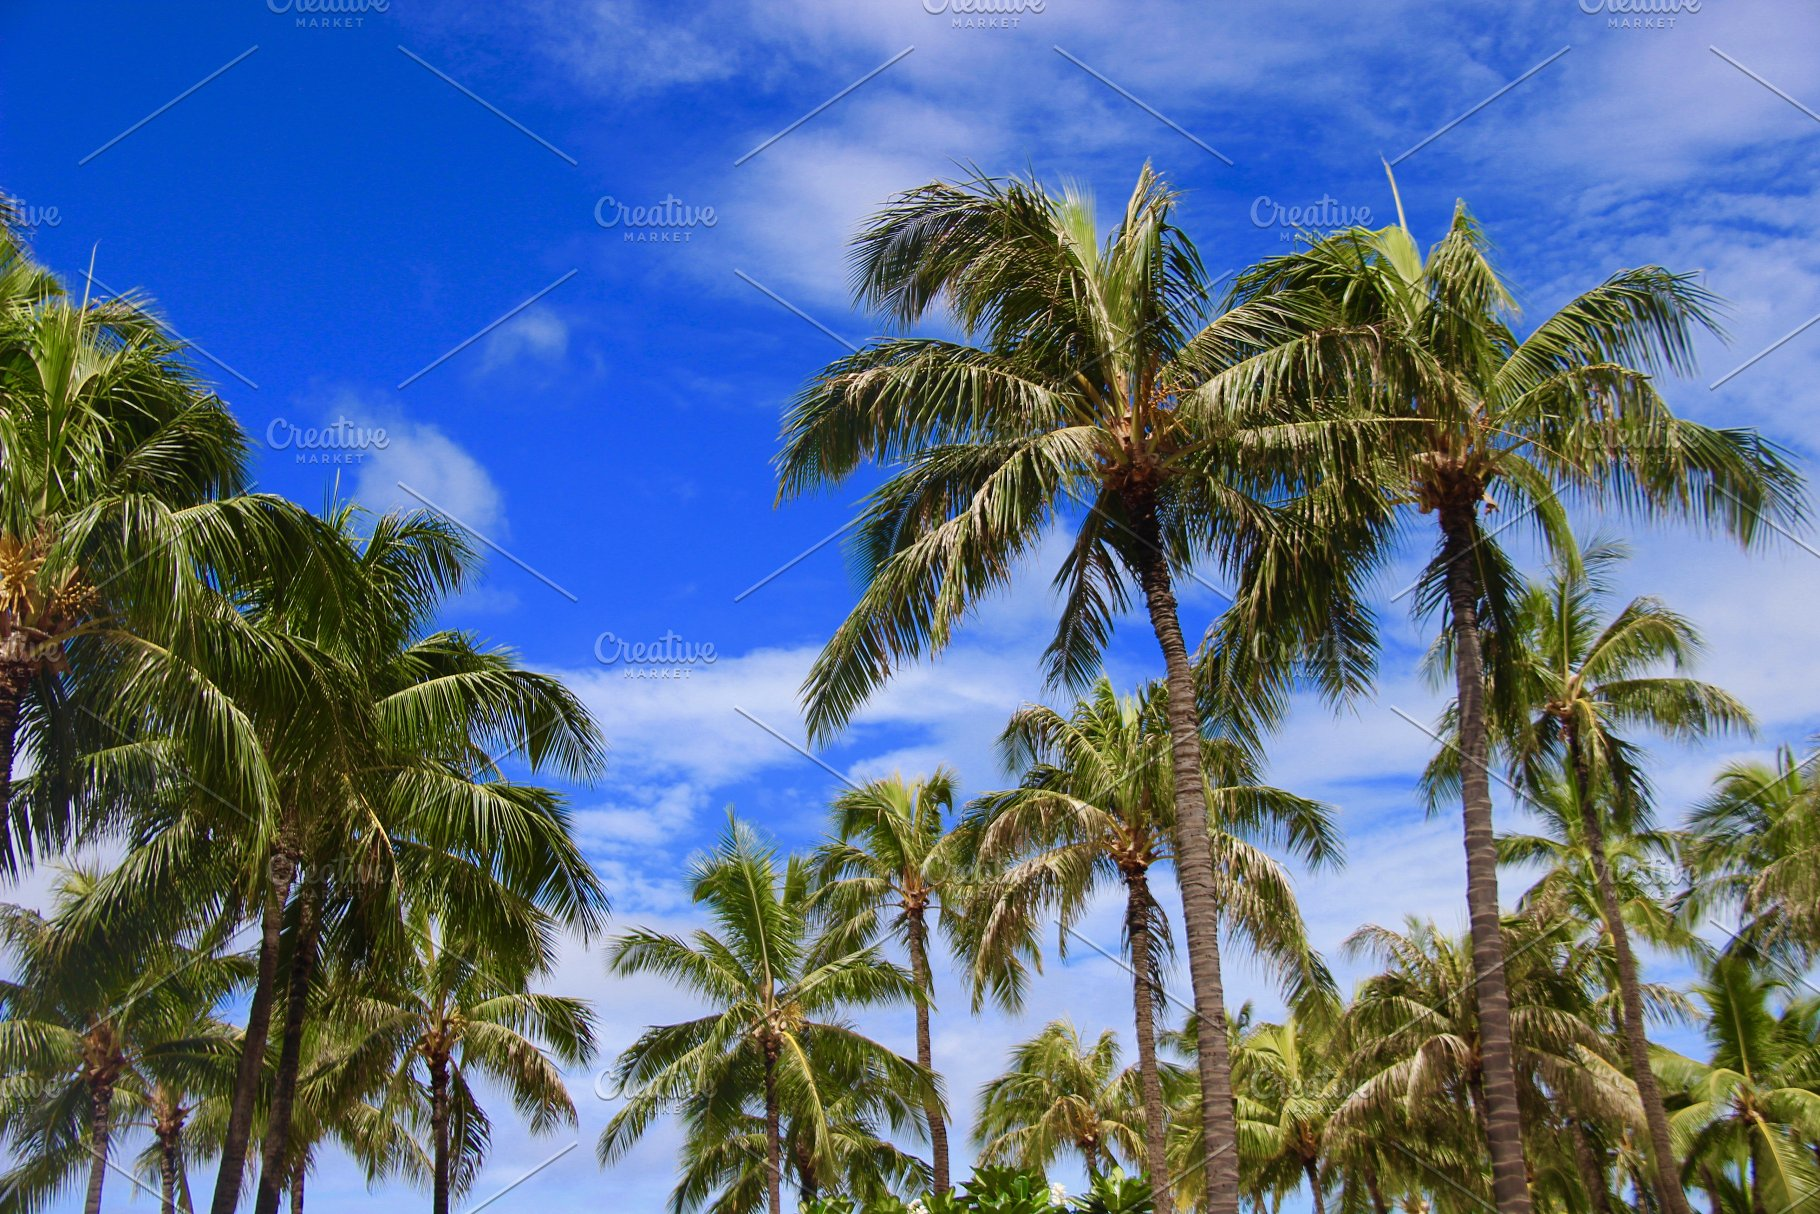 hawaii palm trees  - What kind of fertilizer you should choose for your palm tree?